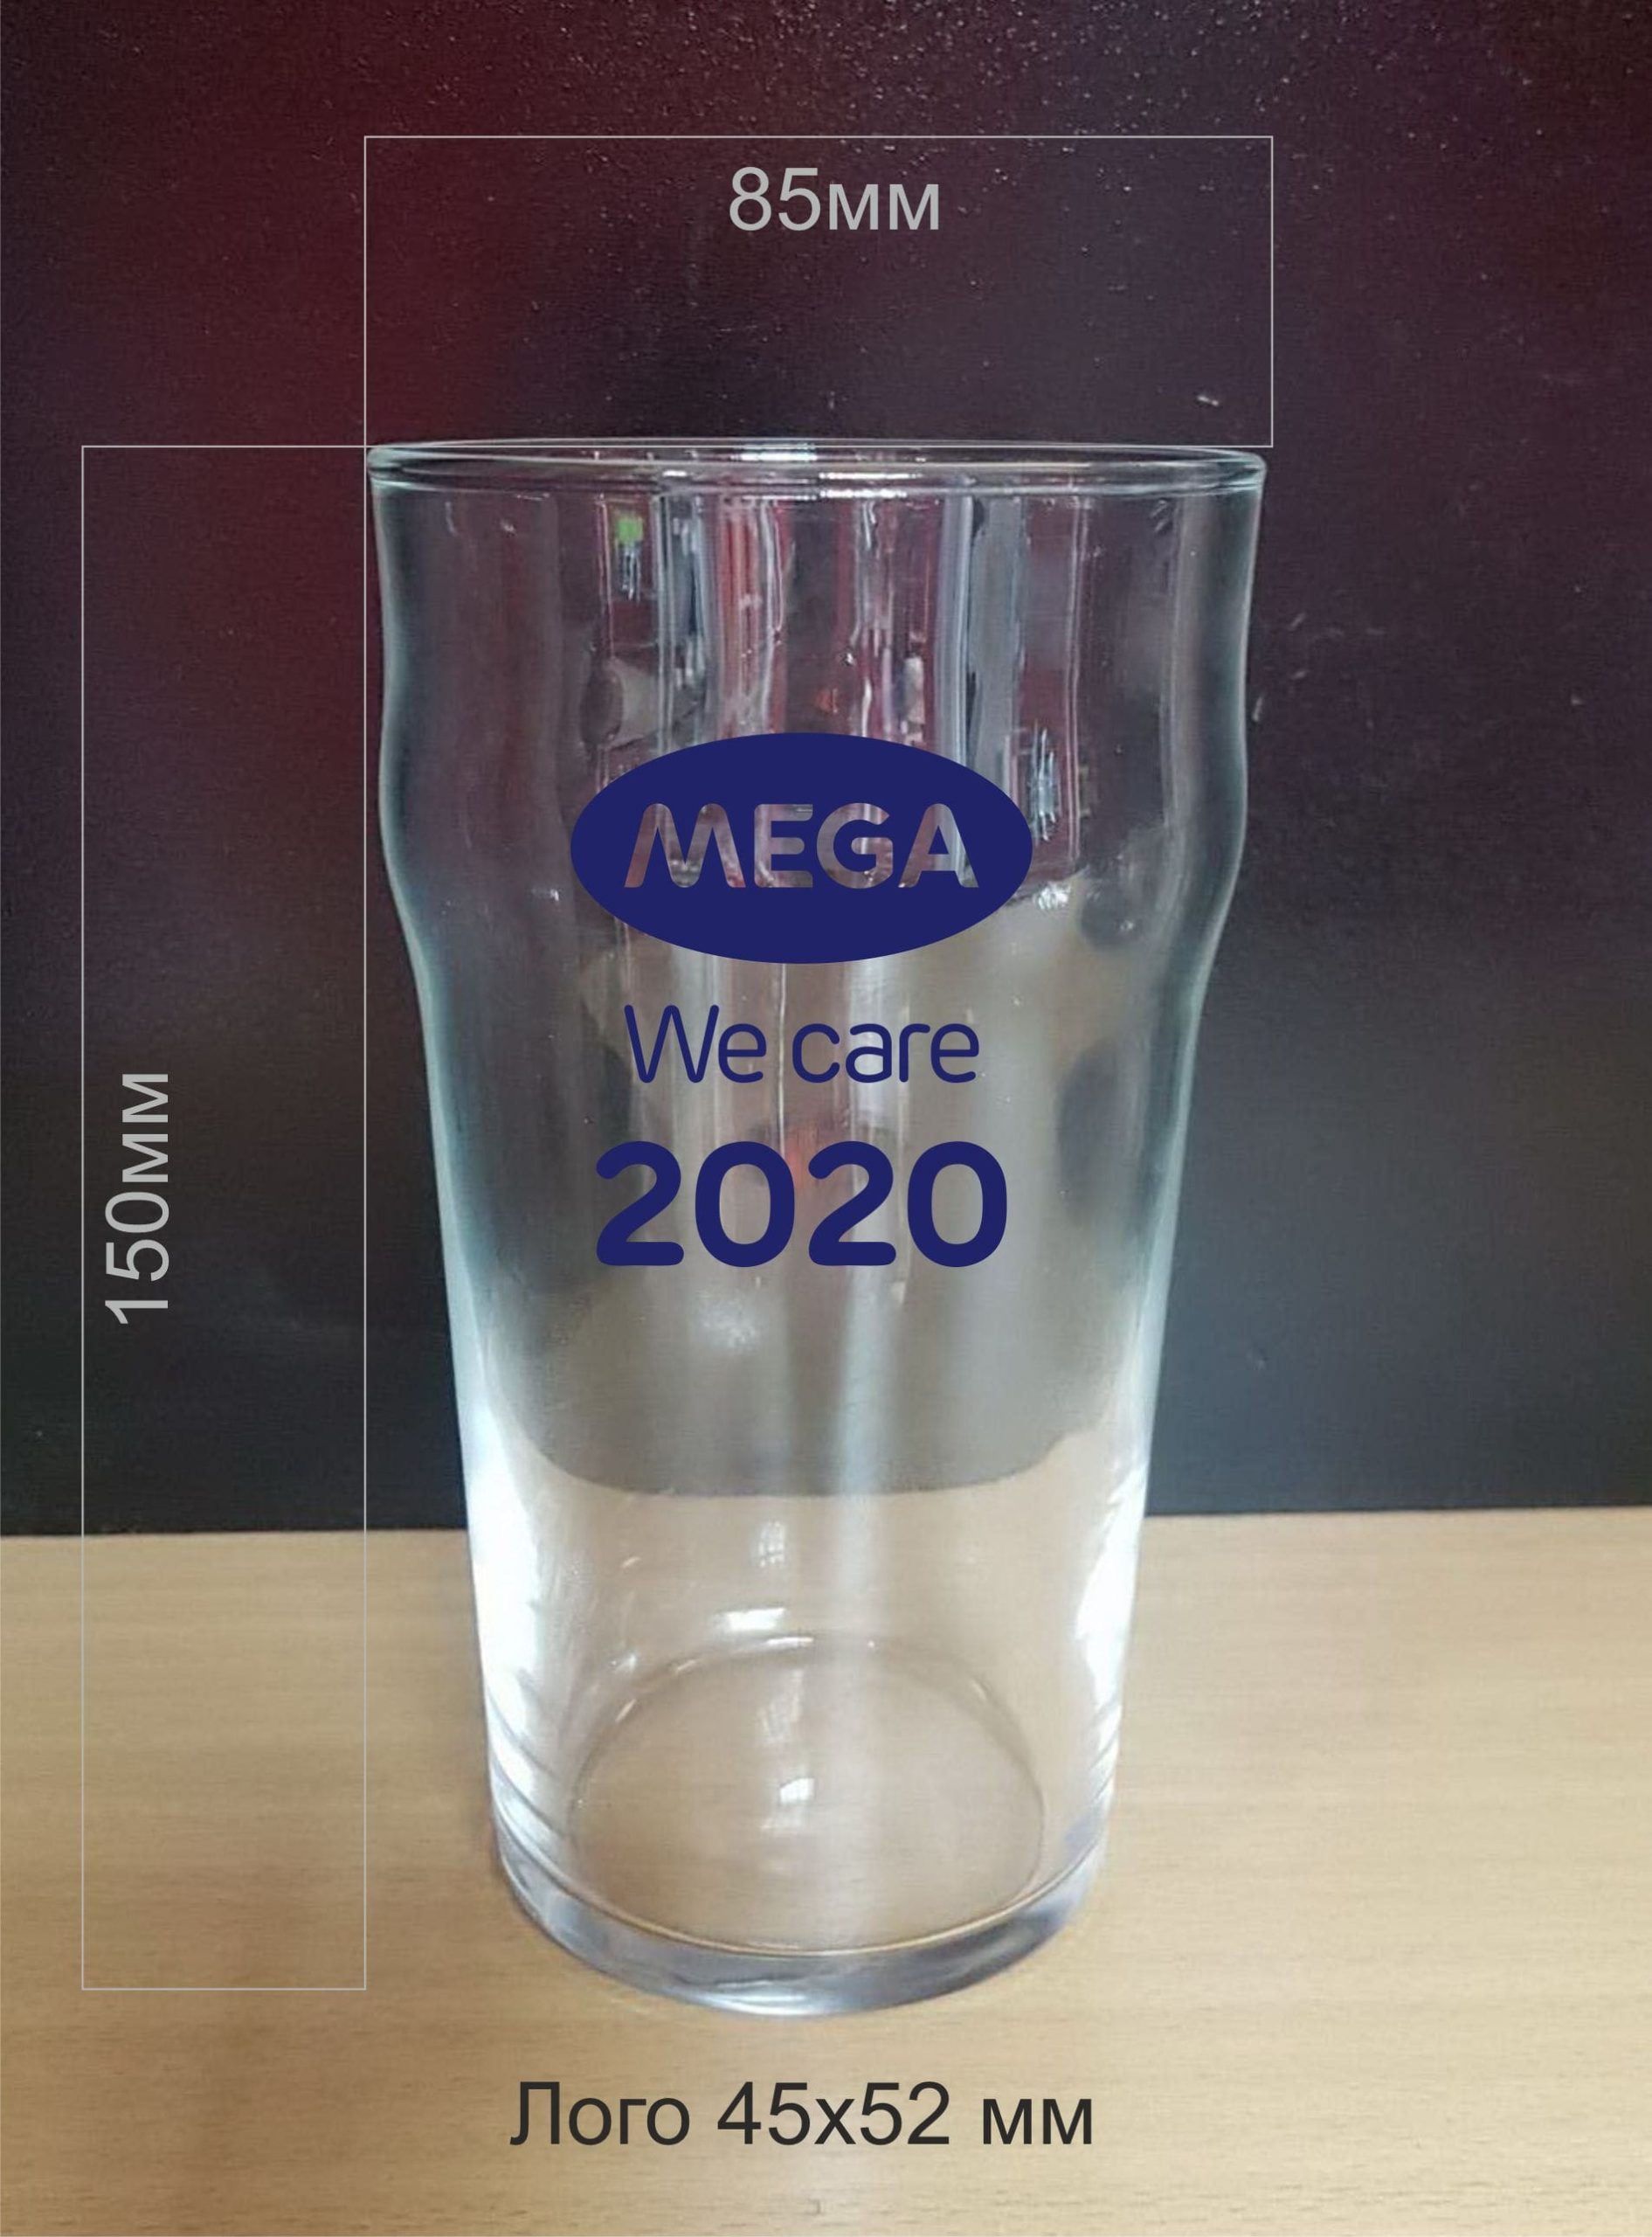 Beer glass branding, printing on glass, cardboard production portfolio